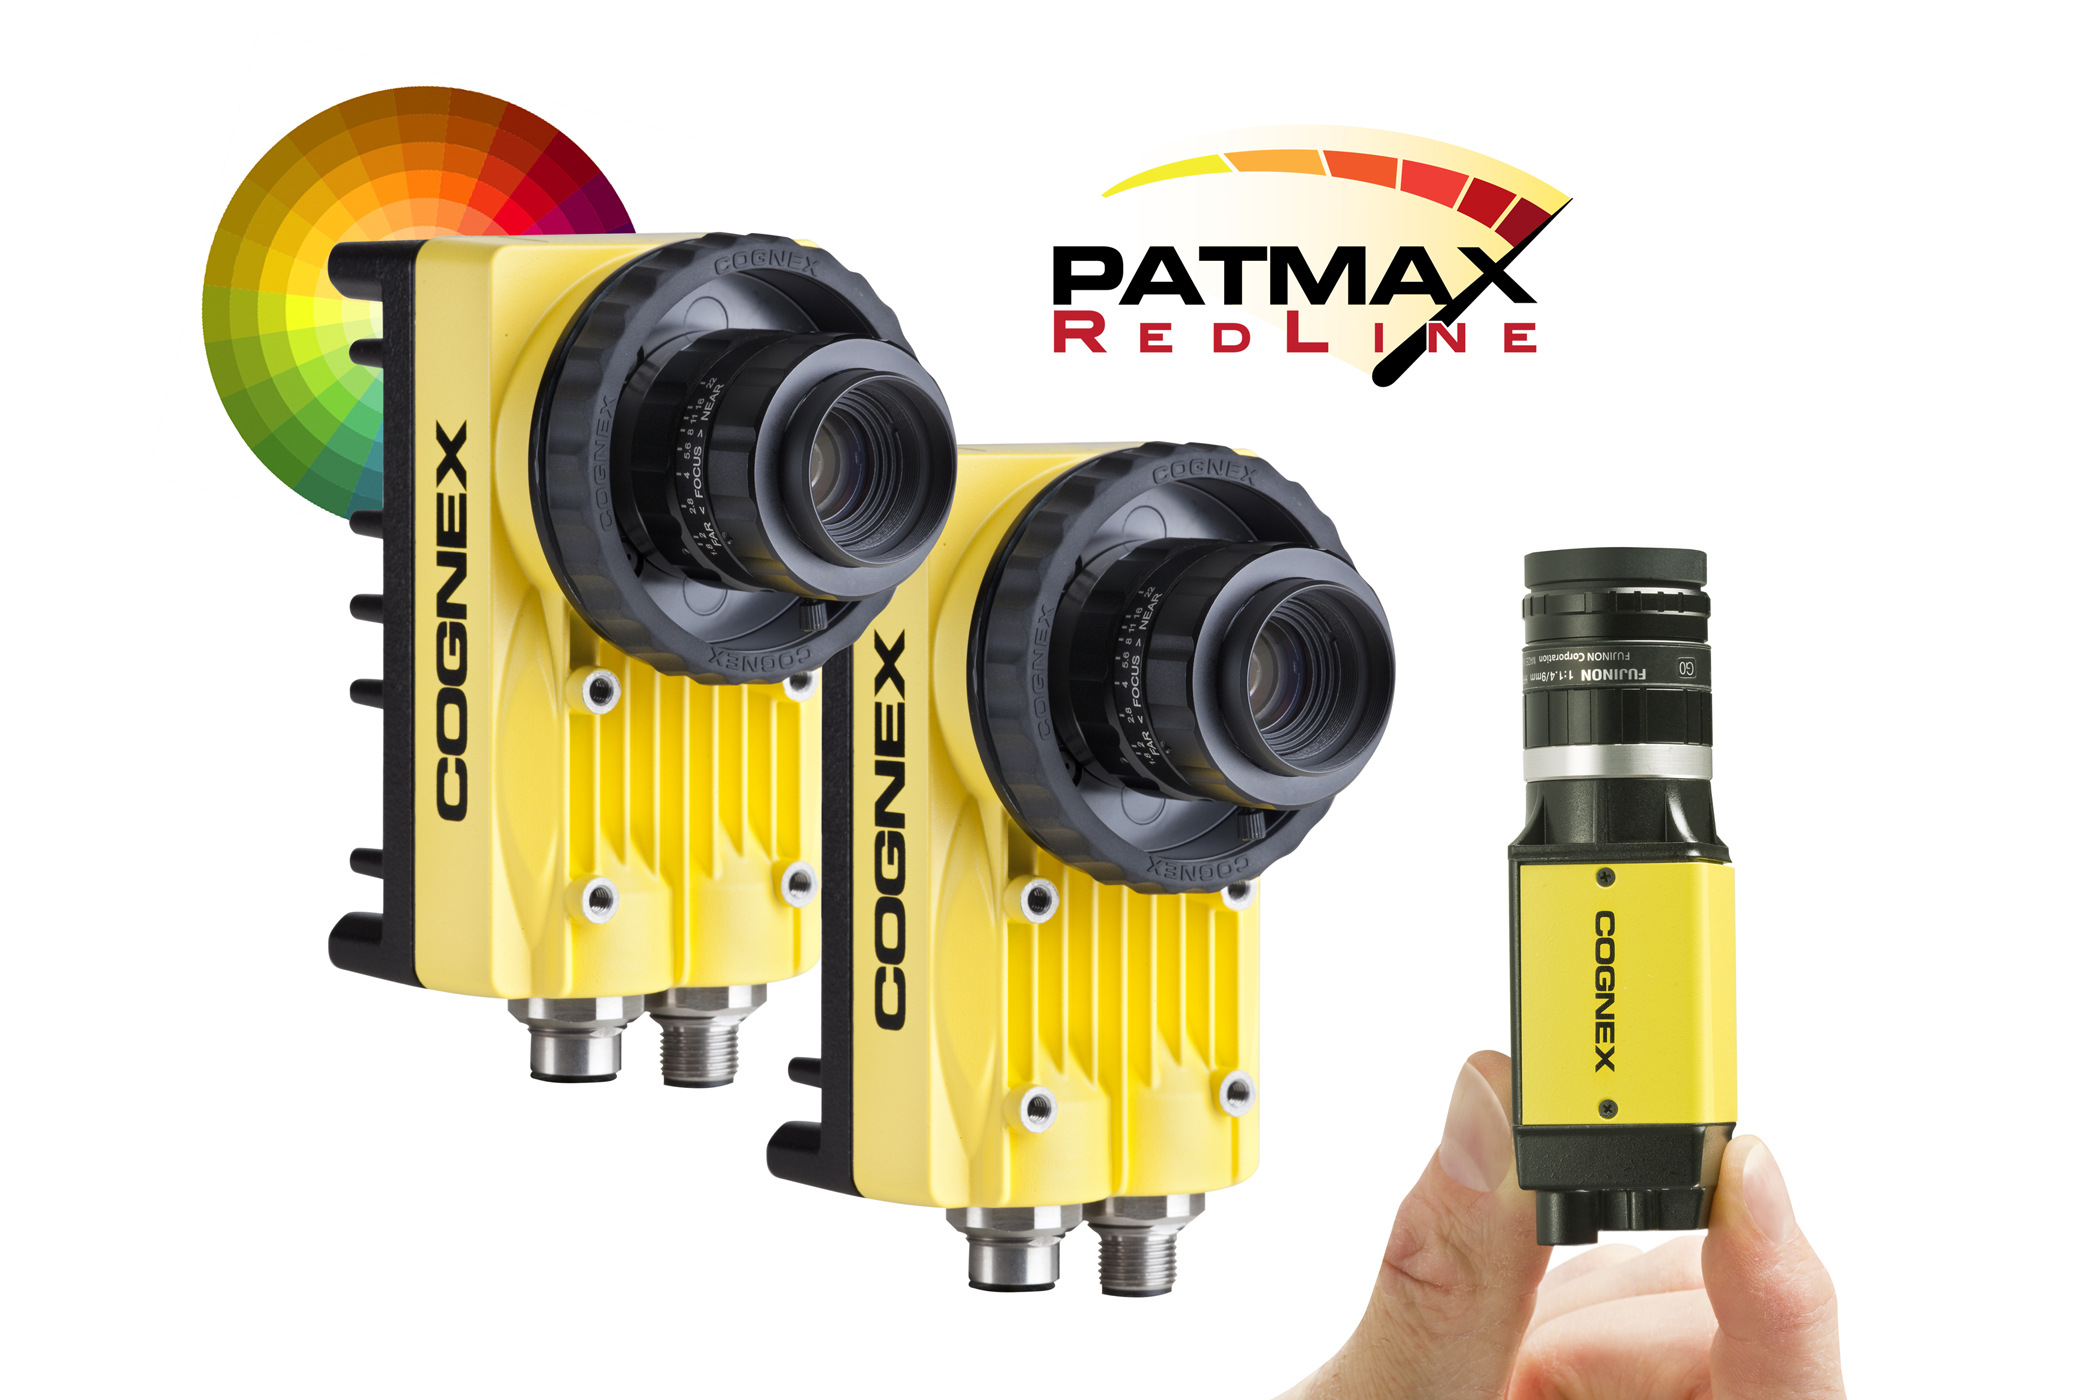 Two In-Sight 5705 and 8405 with color wheel and Patmax redline logo